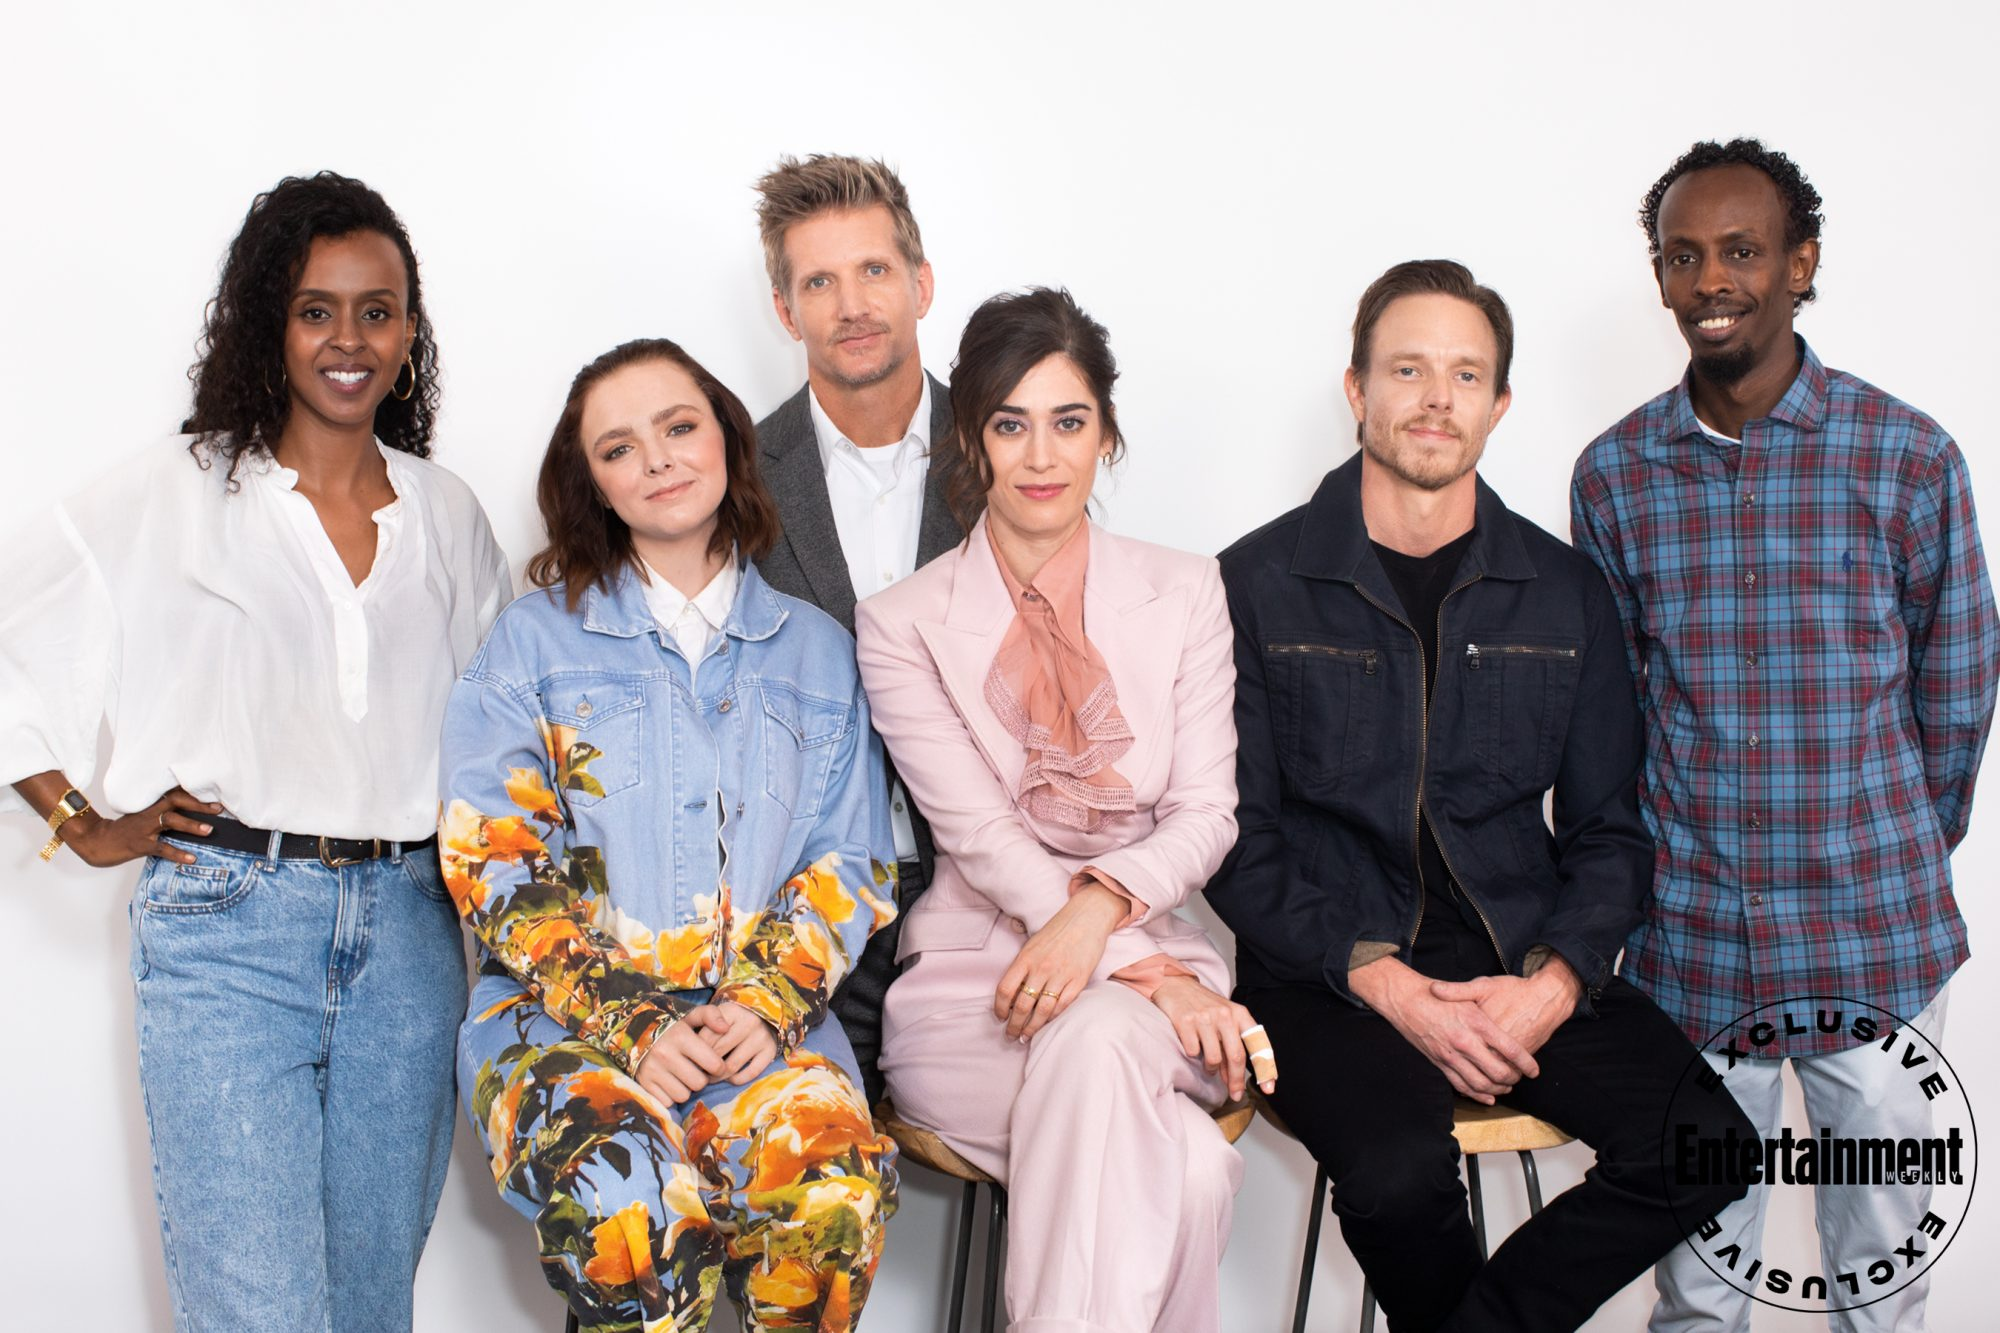 Yusra Warsama, Elsie Fisher, Paul Sparks, Lizzy Caplan, Matthew Alan, and Barkhad Abdi from Castle Rock